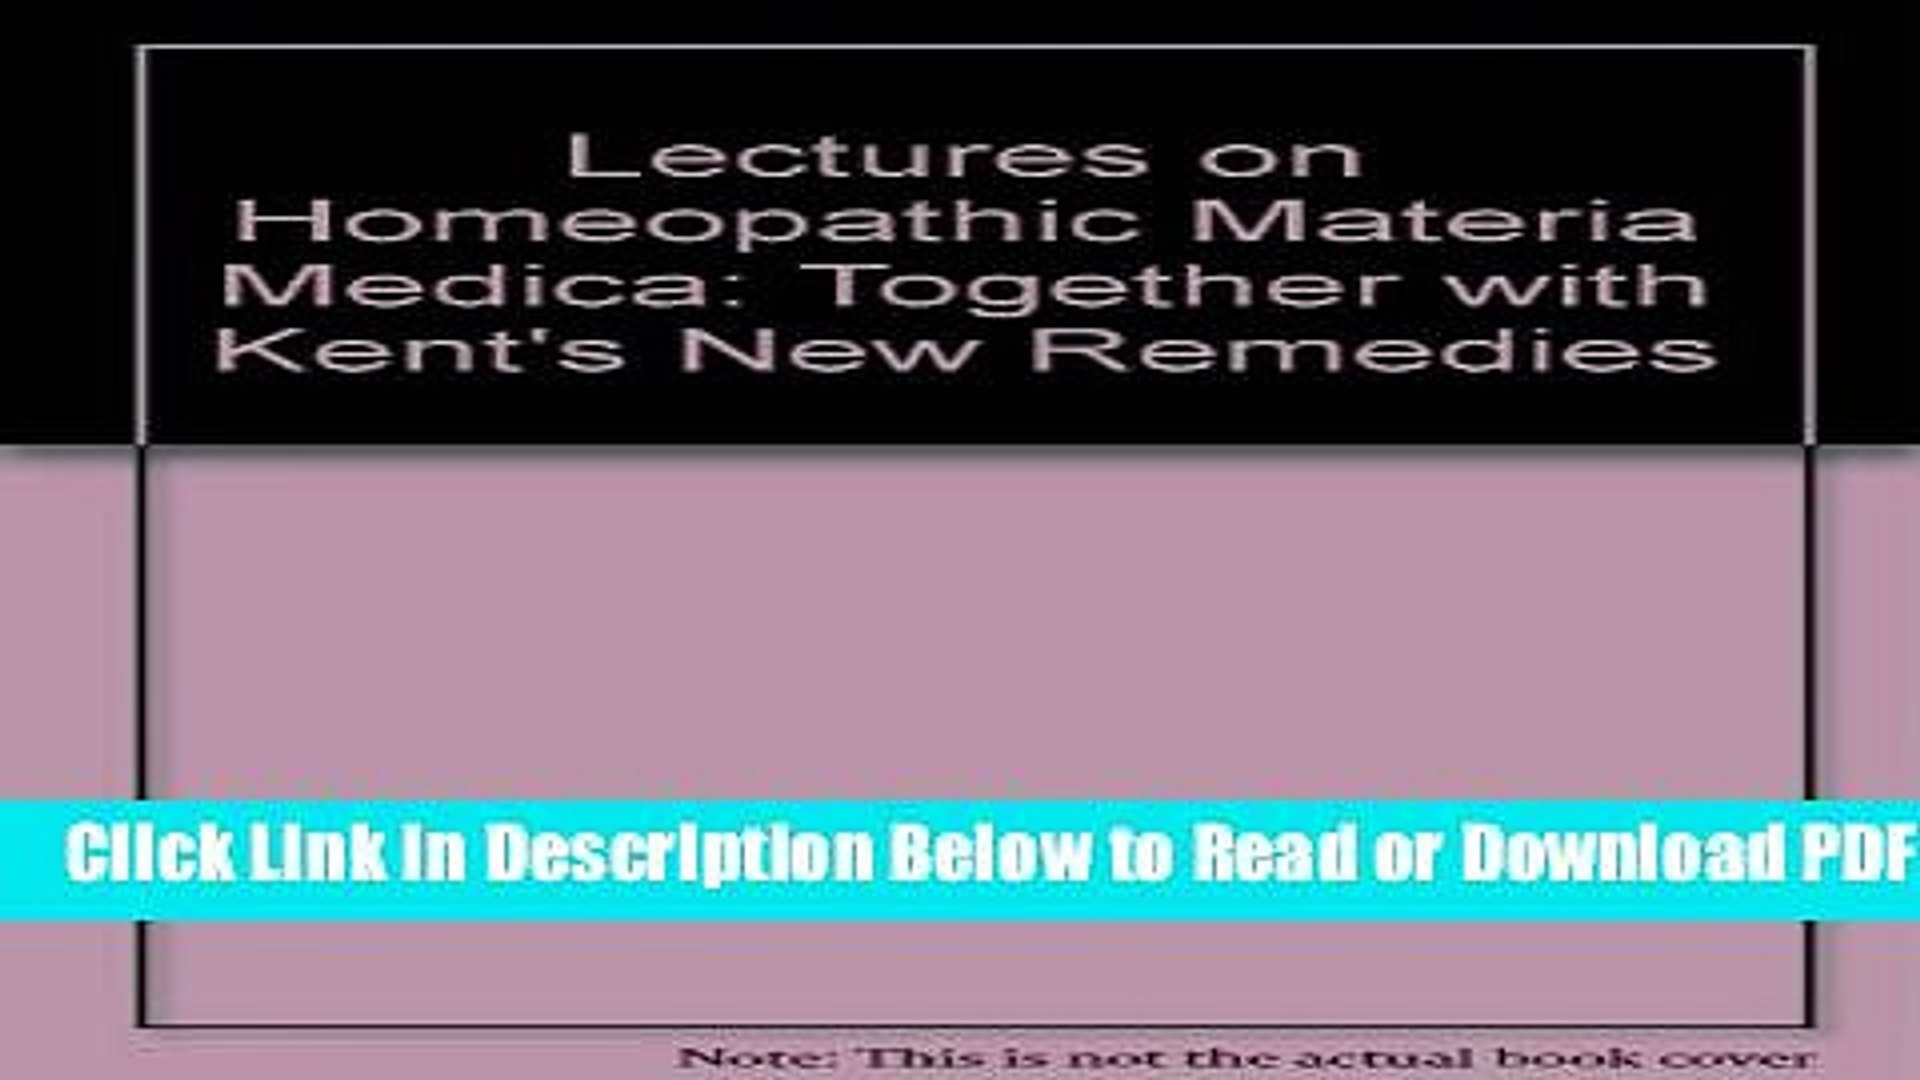 [Get] Lectures on Homeopathic Materia Medica: Together with Kent s New  Remedies Popular New